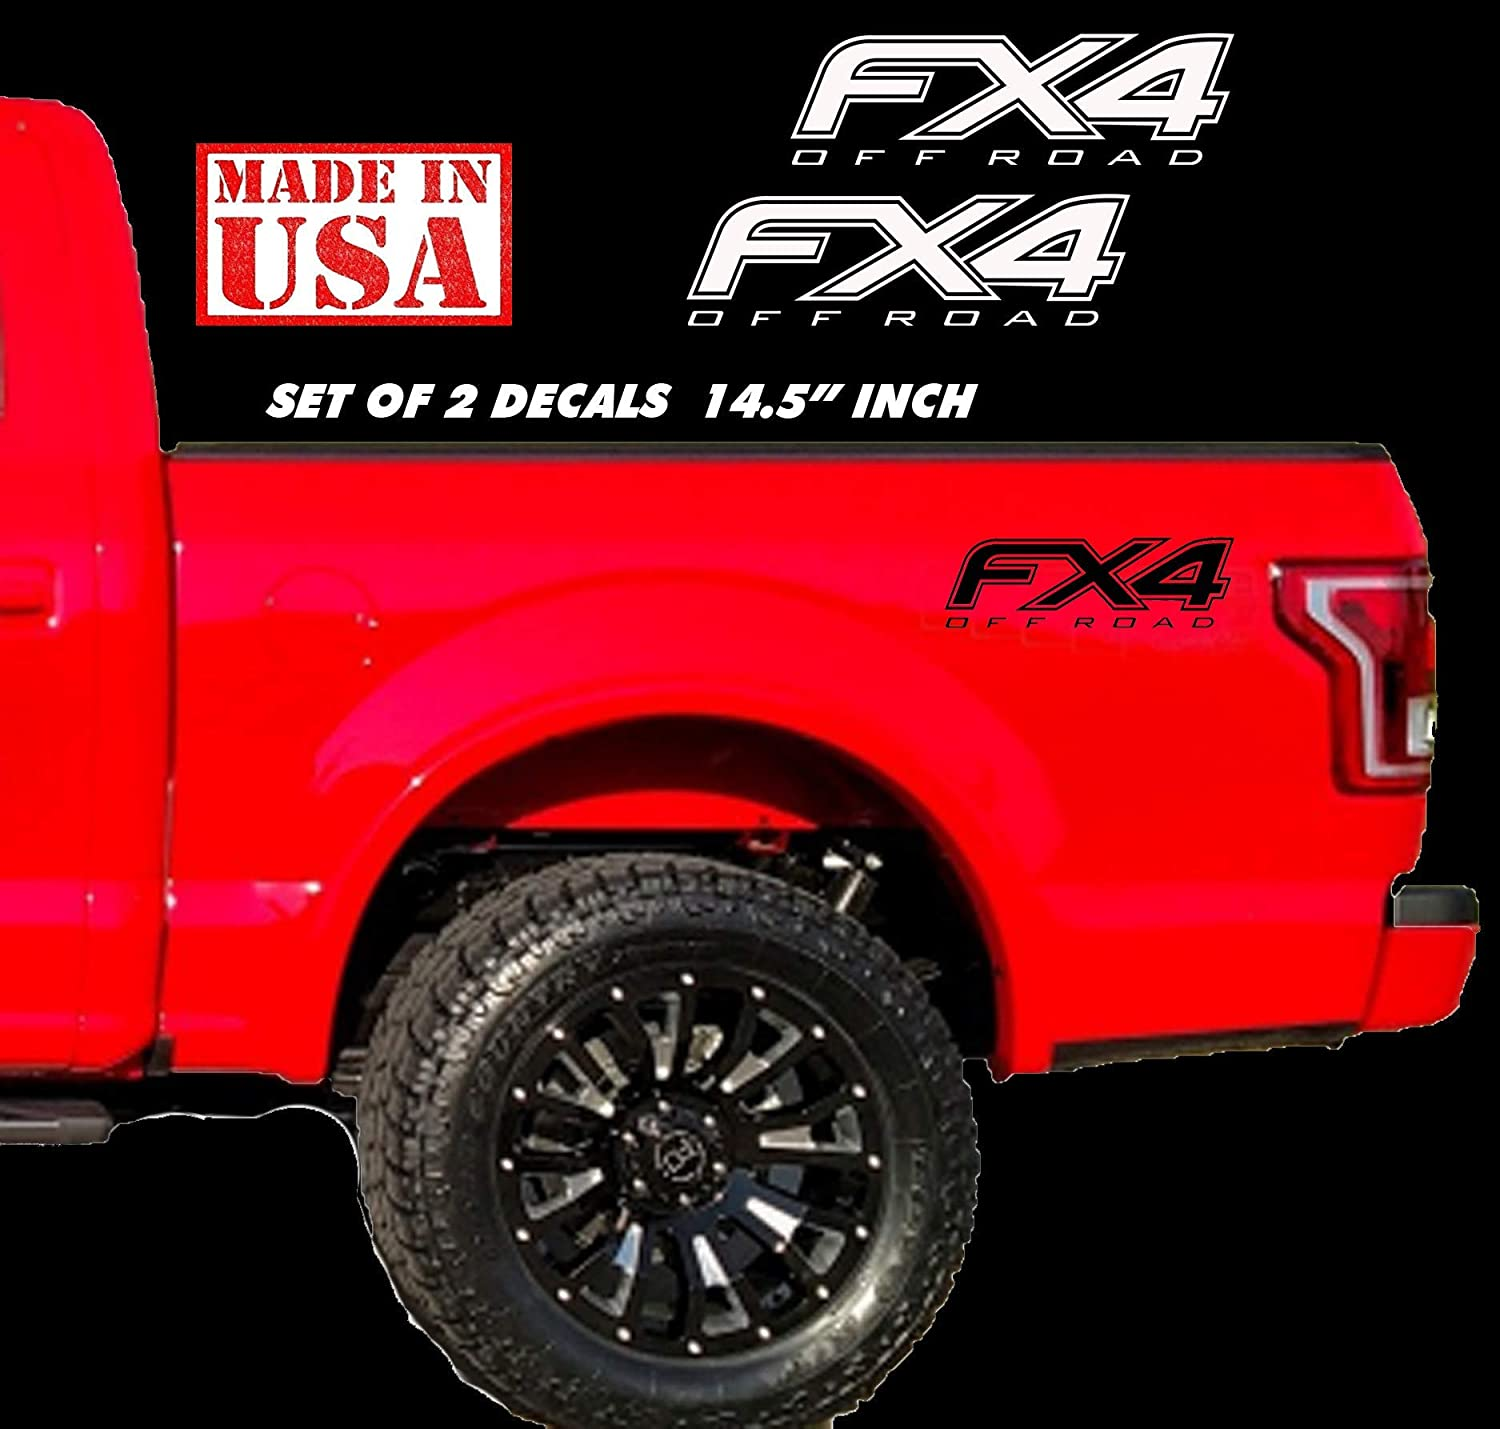 DODGE SPORT SIDE DECAL 4X4 OFFROAD TRUCK CAR WINDOW STICKERS 2-PACK